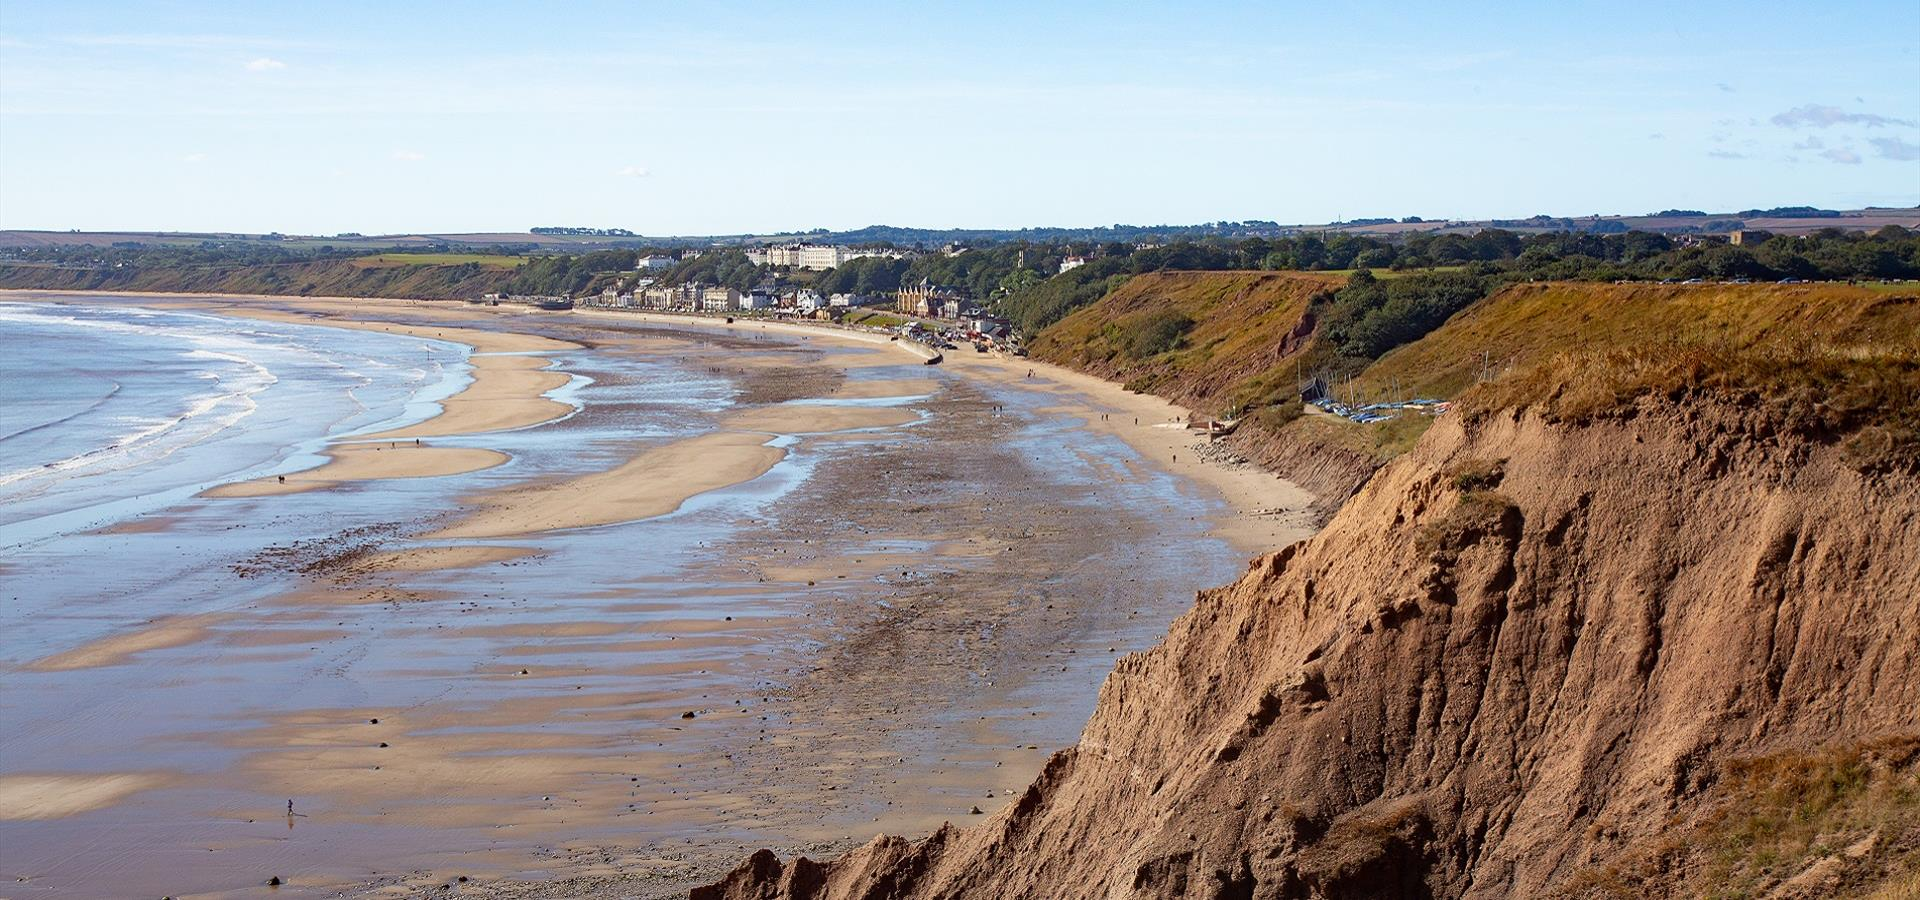 An image of Filey by Ravage Productions